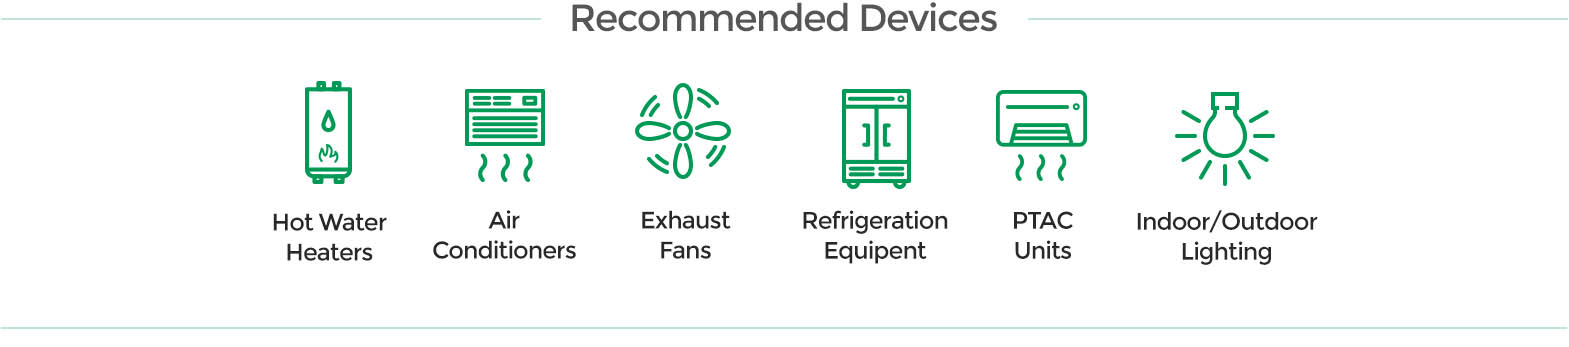 Recommended Devices